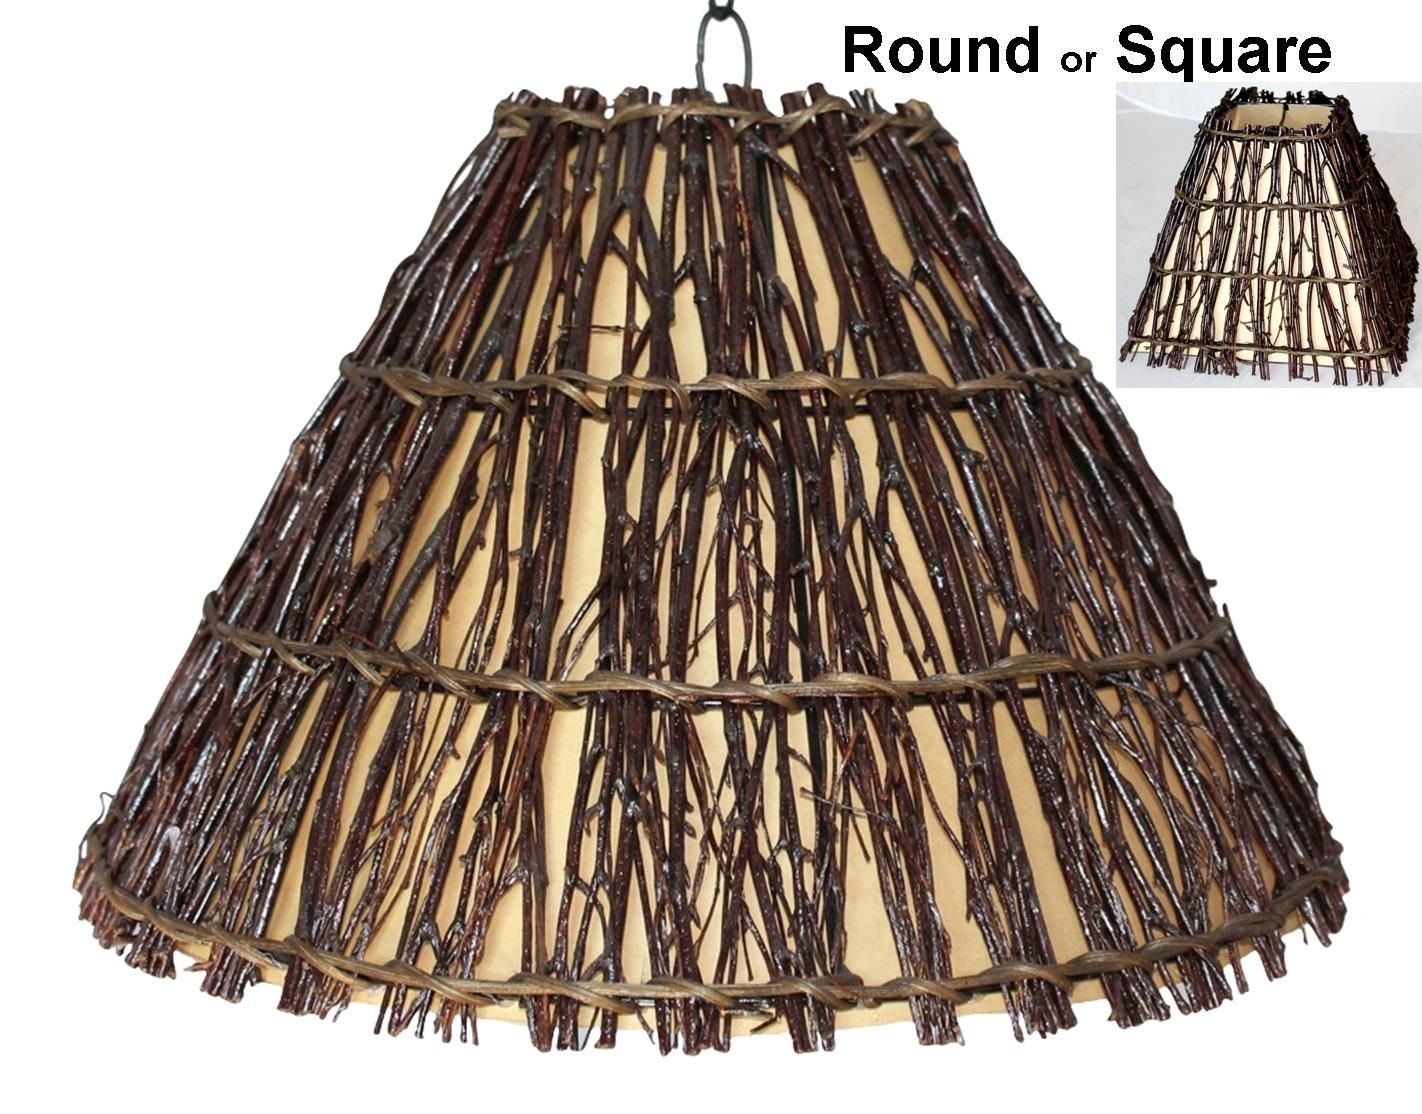 Rustic Tree Wood Twig Swag Lamp Plug In or Direct Wire Pendant Light ... for Square Wood Lamp Shade  303mzq